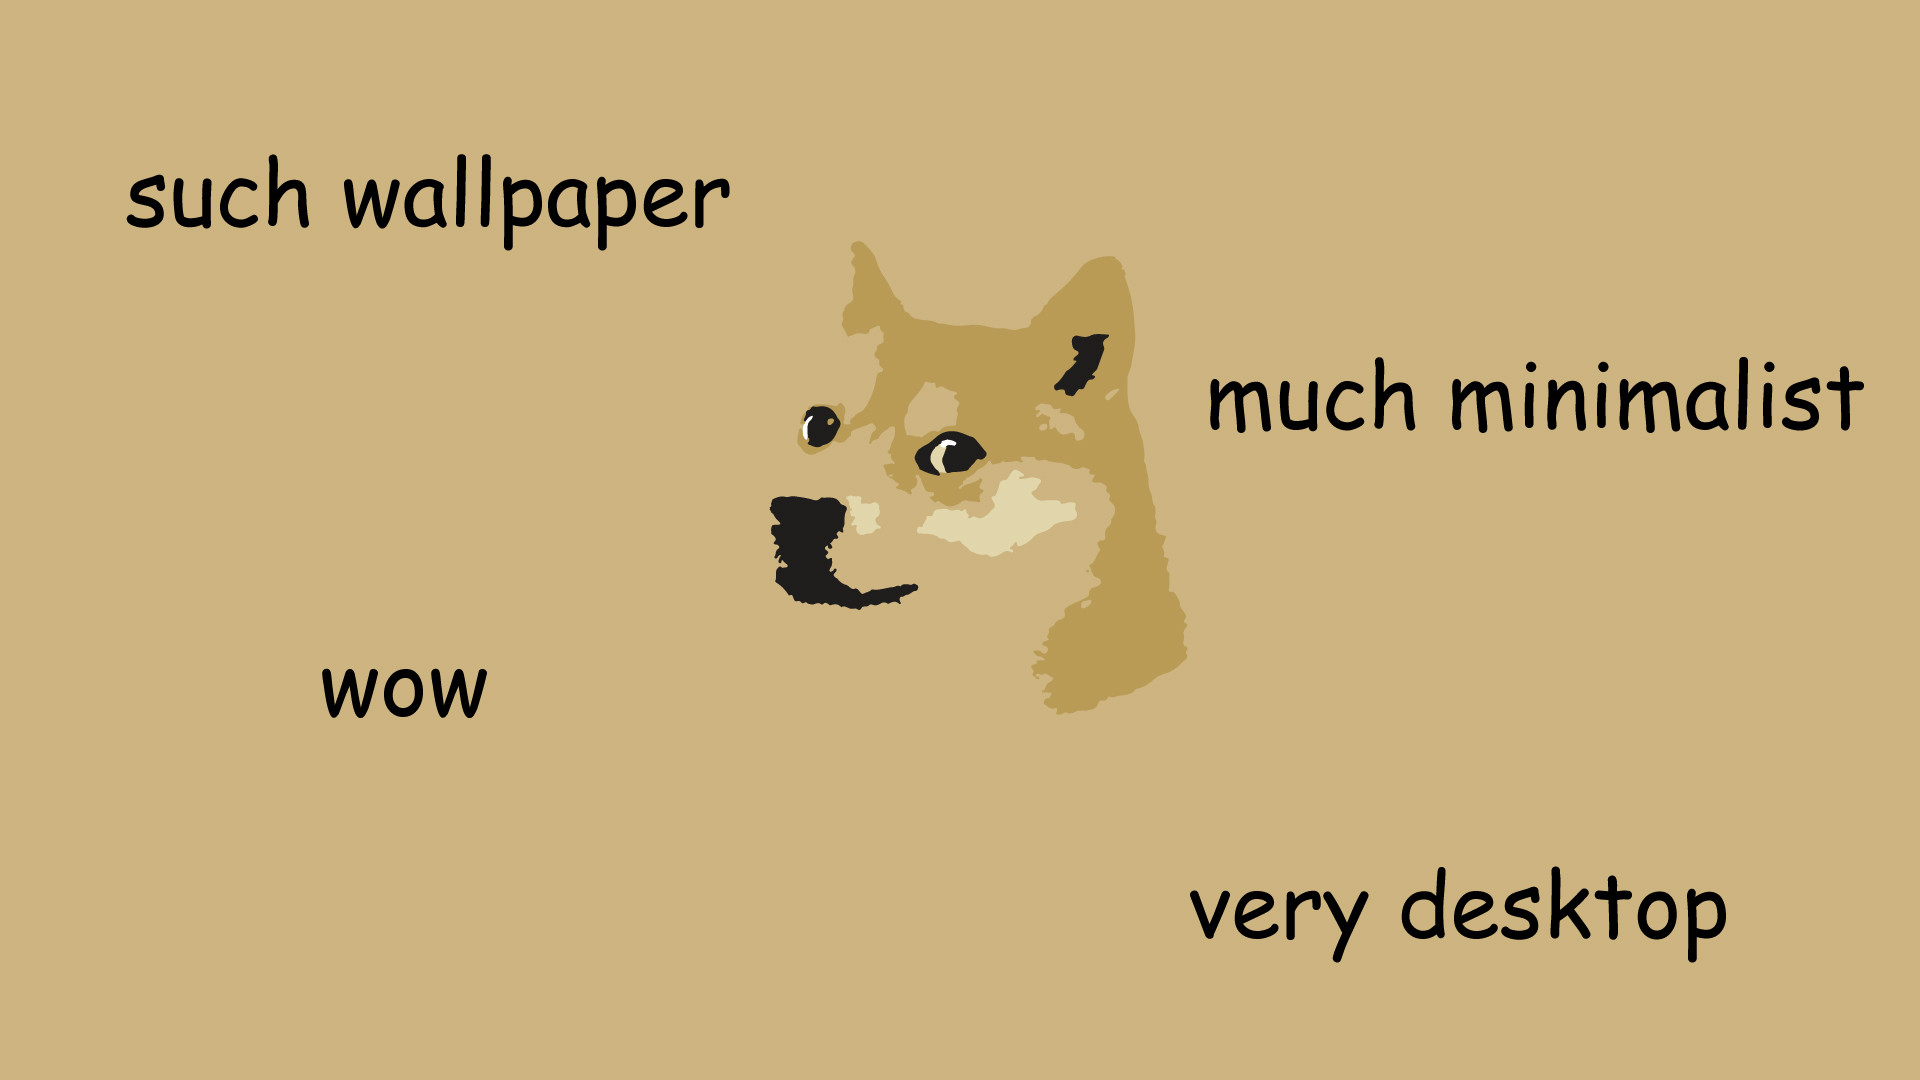 1920x1092 Doge Wallpapers For Android For Desktop Wallpaper 1920 x 1092 px 630 KB mac 1980x1080 iphone